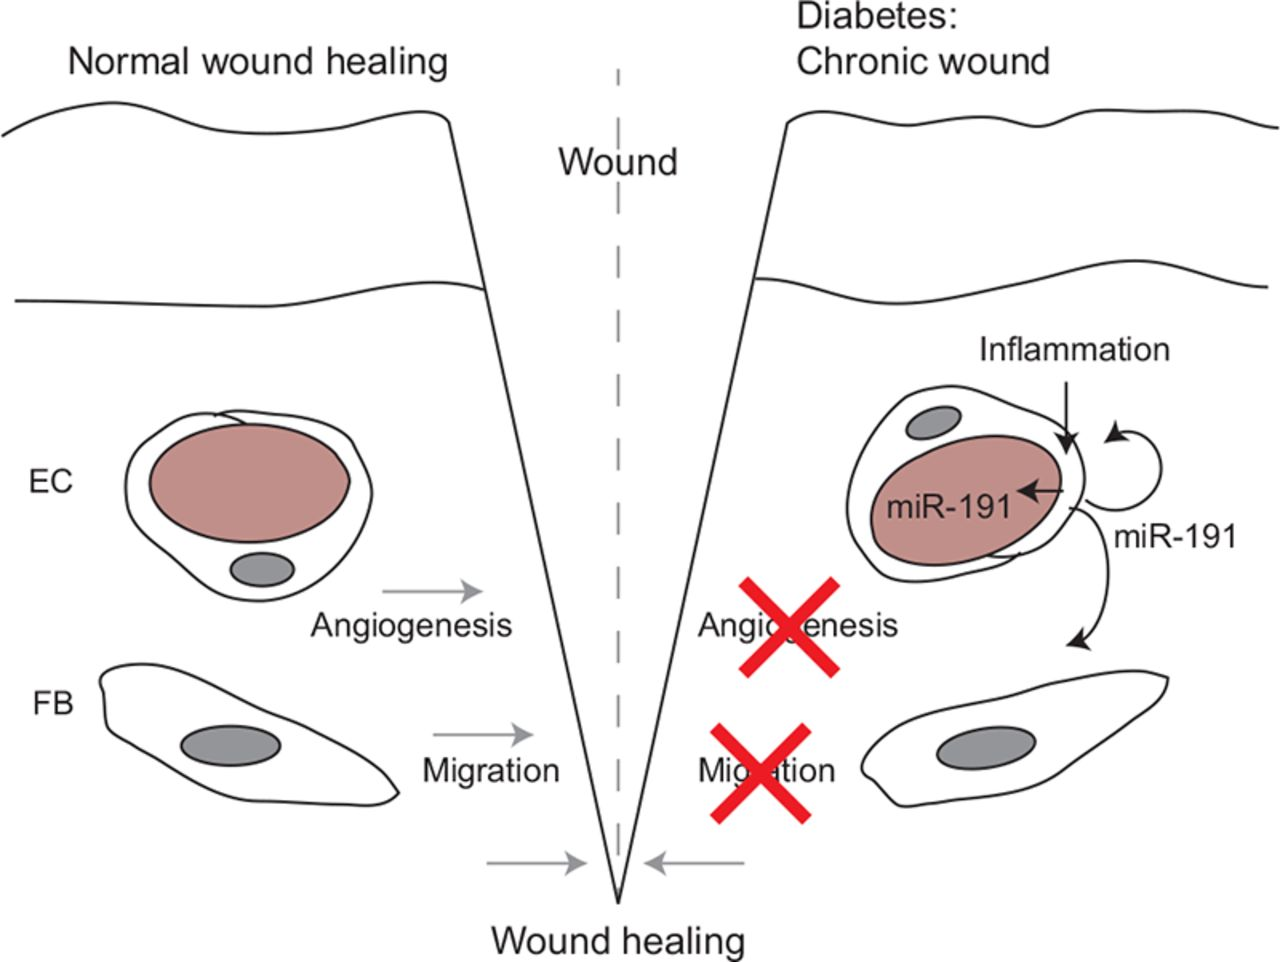 Circulating MicroRNAs Link Inflammation to Impaired Wound Healing in